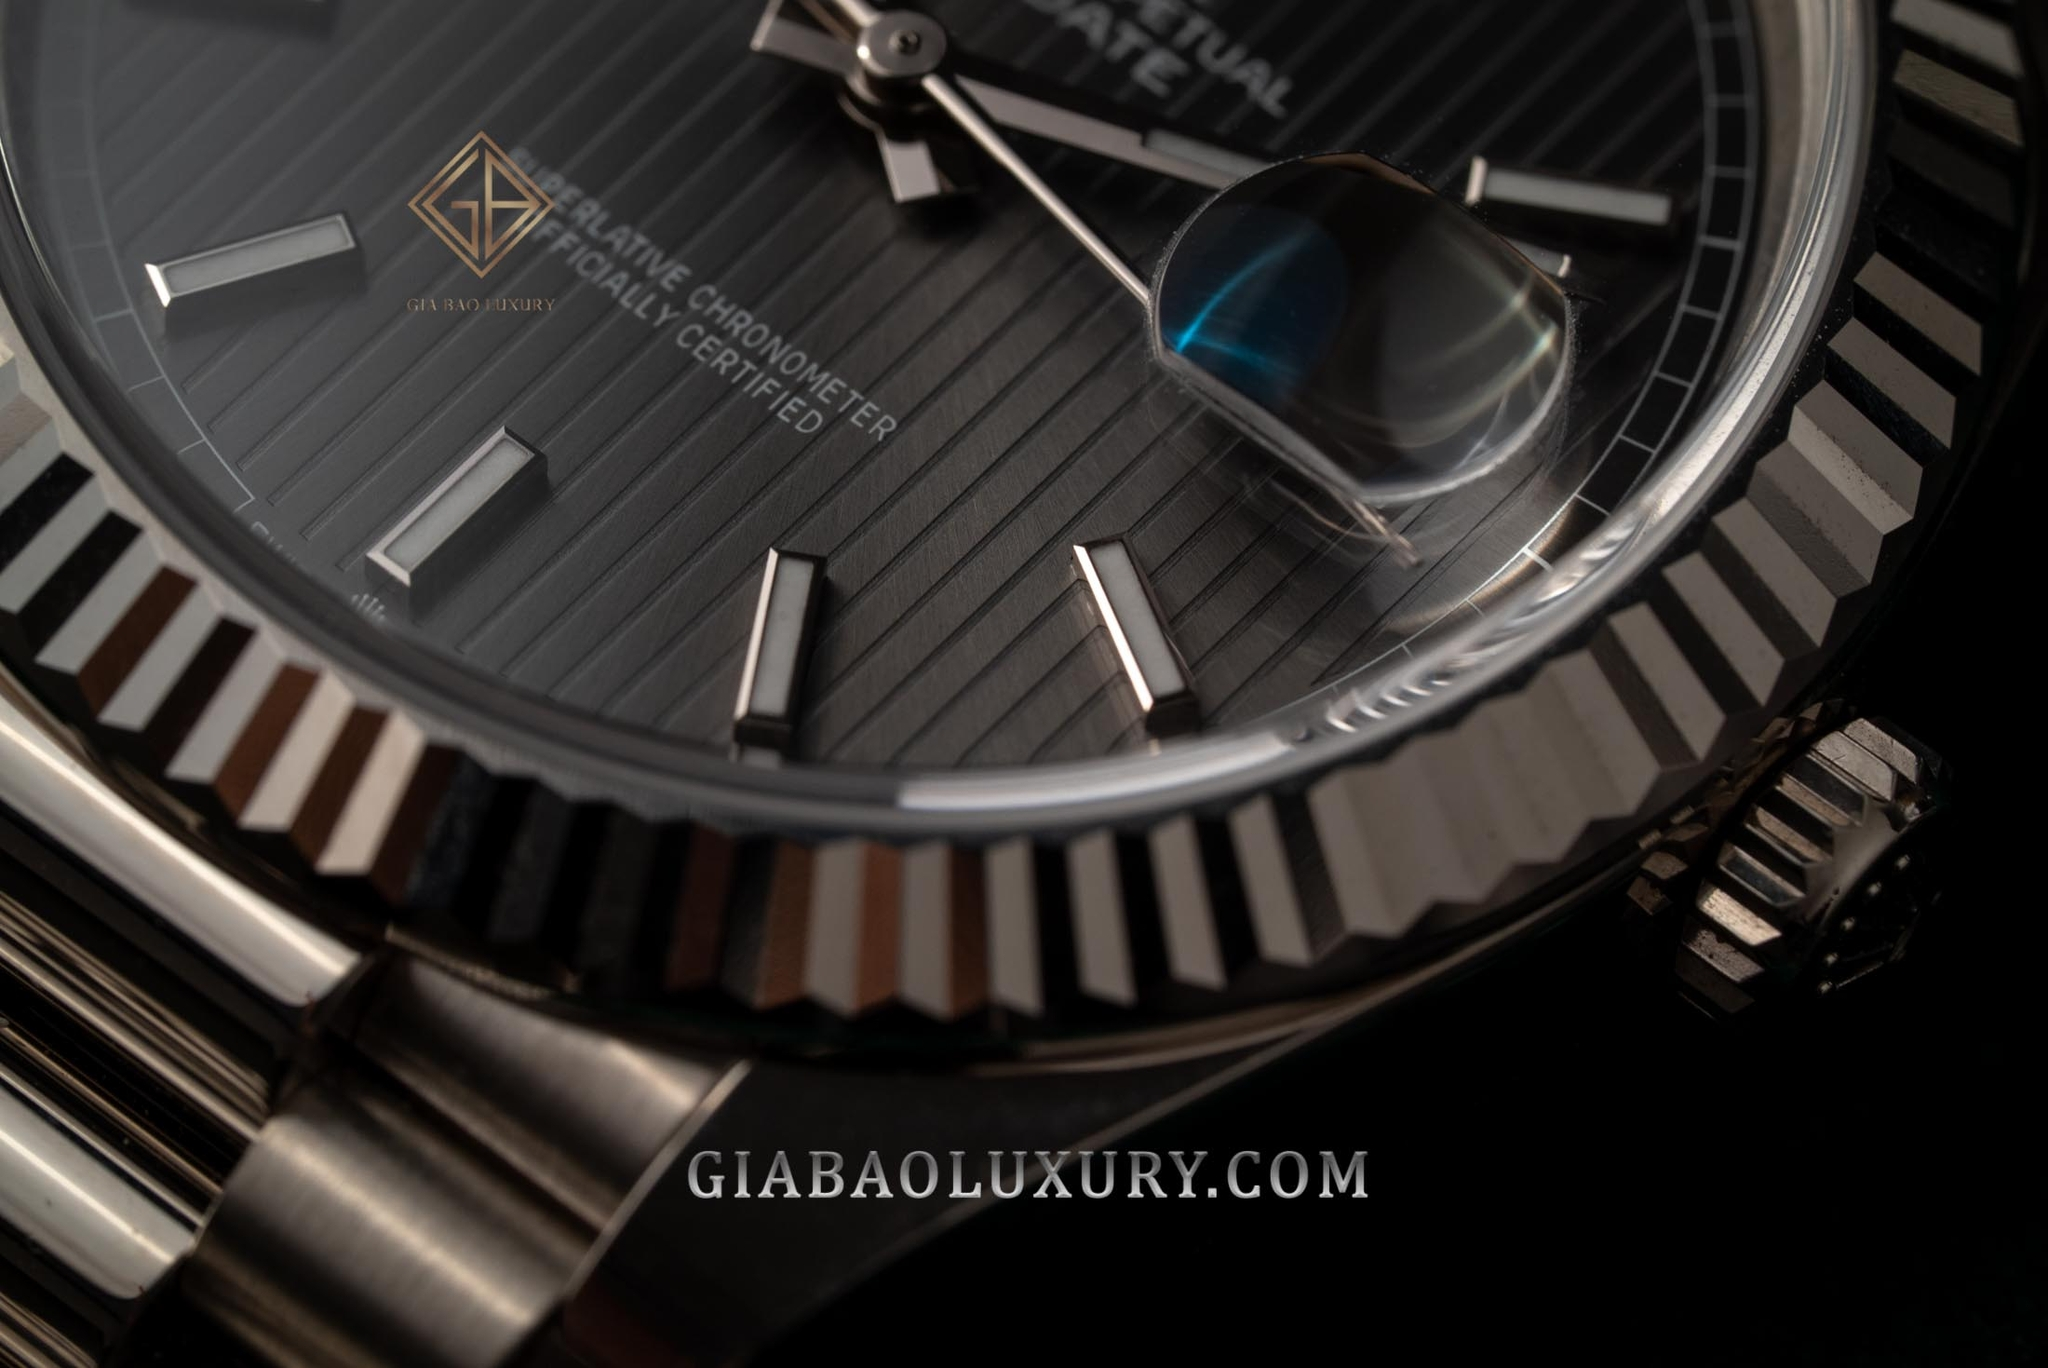 Review Đồng hồ Rolex Day-Date 228239 Mặt số Rhodium kẻ sọc